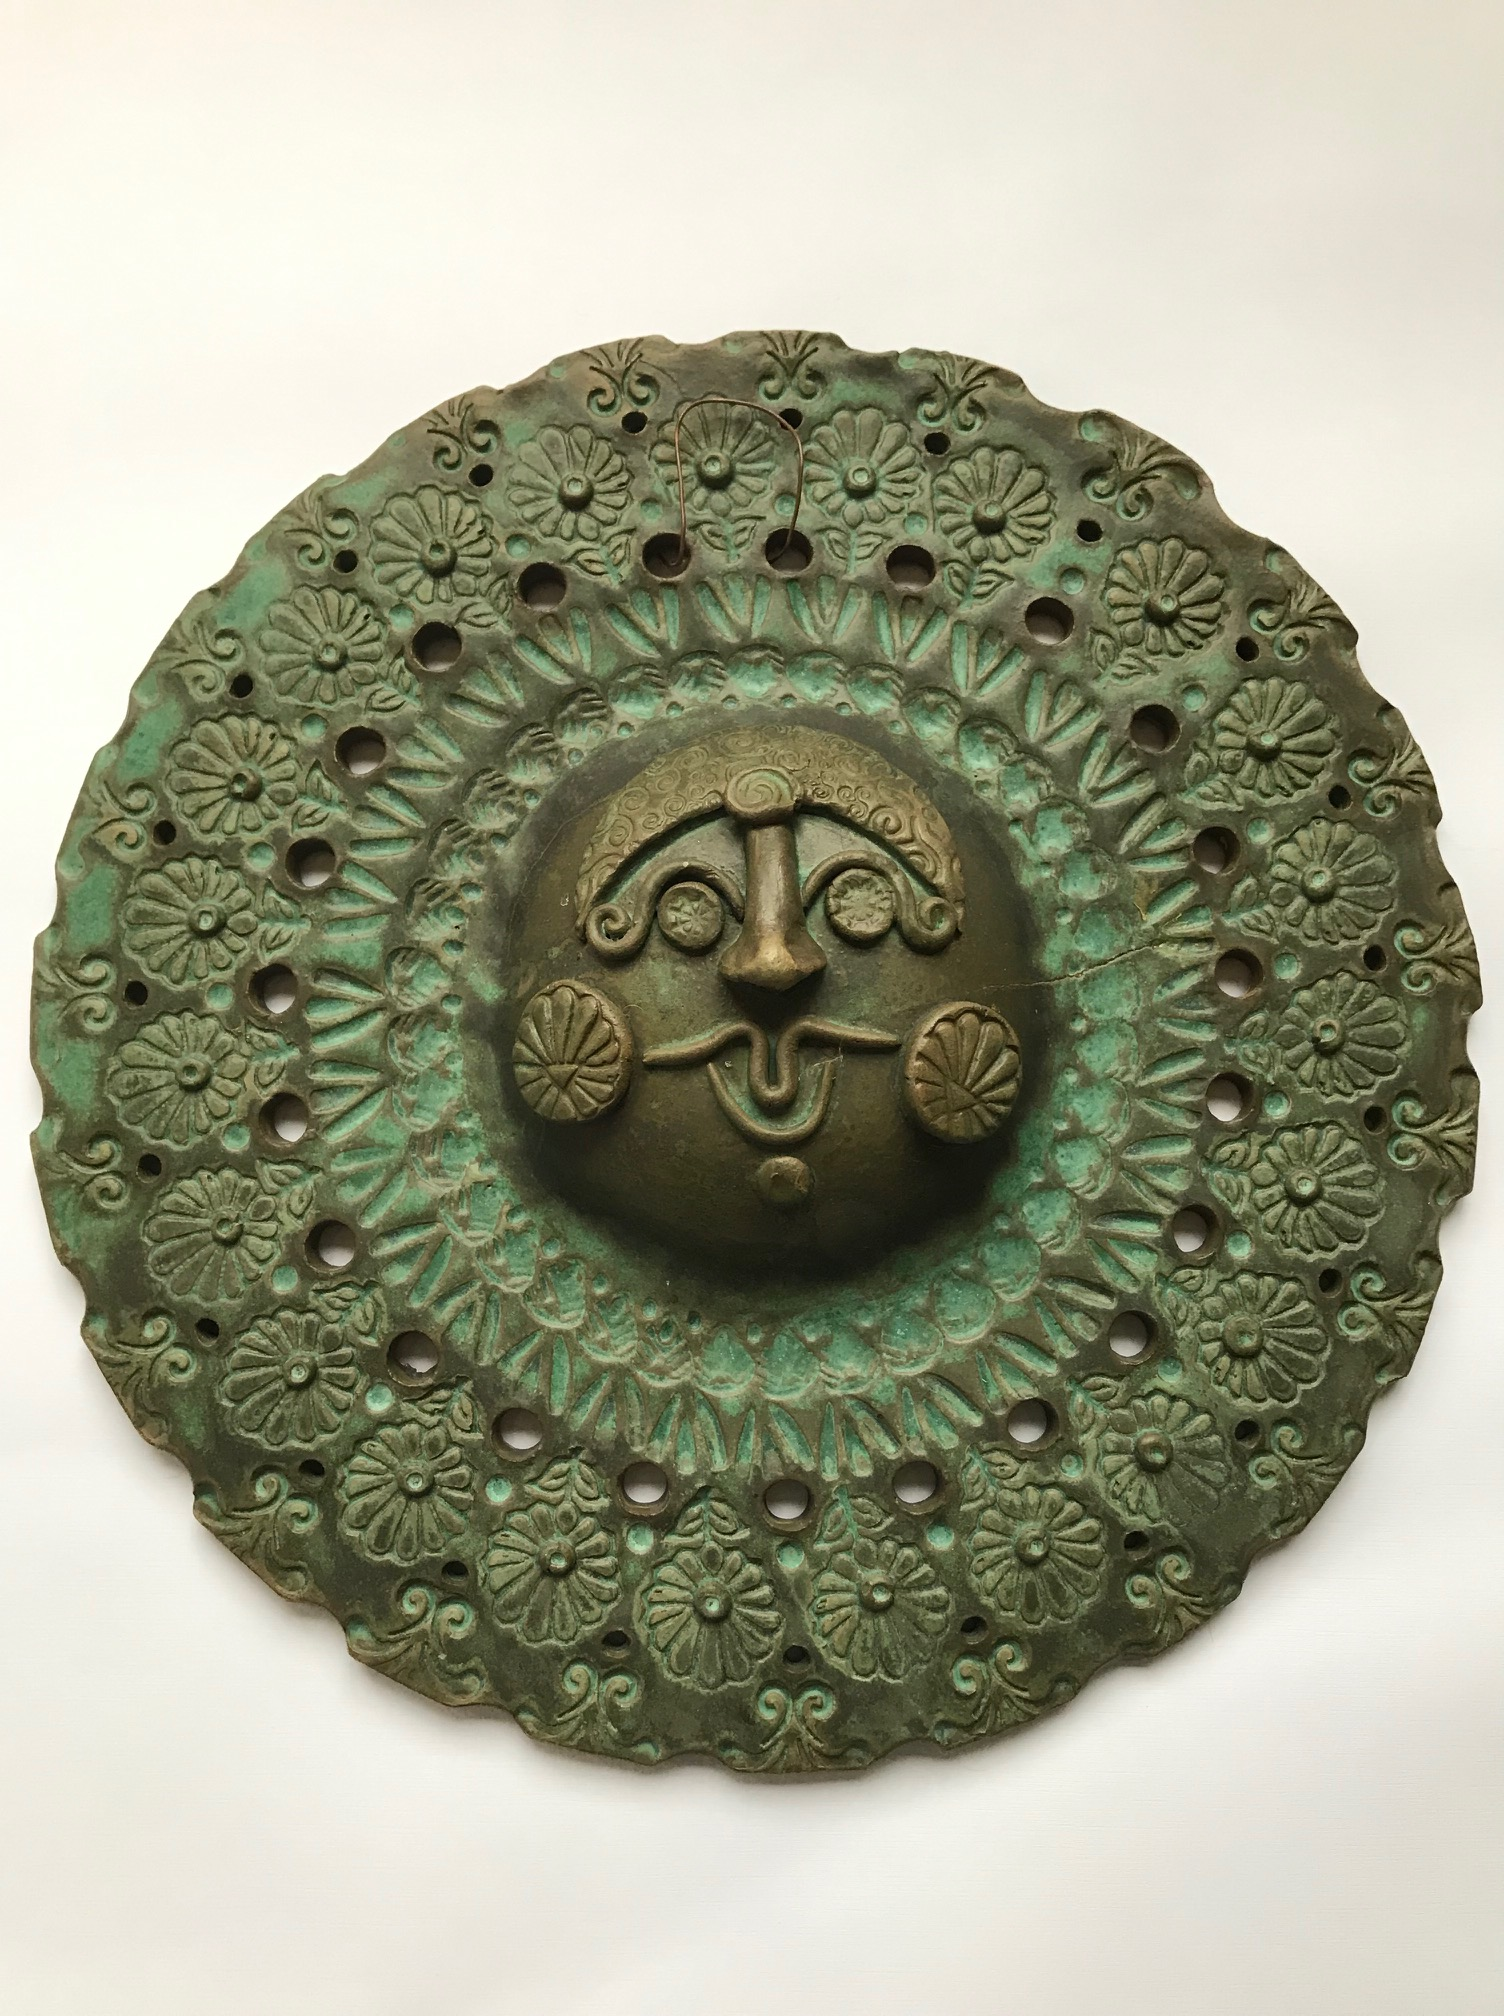 Frey, Weathered Sun, 13x13x2 in. - clay - Handbuilt